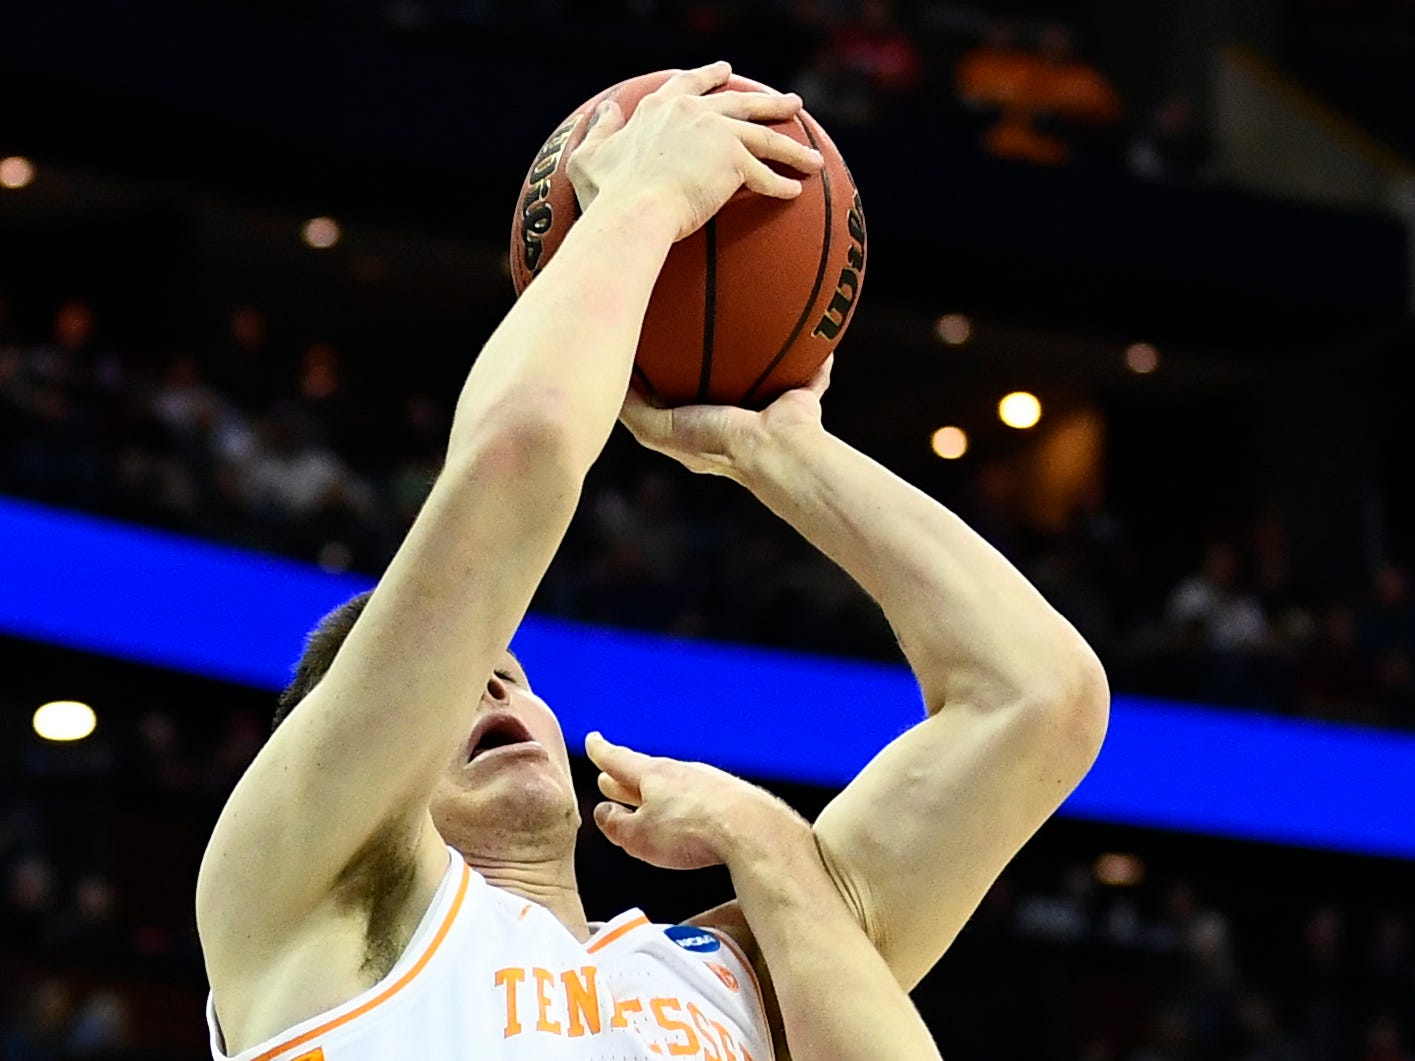 Tennessee forward John Fulkerson (10) goes for a layup against Colgate guard Tucker Richardson (15) during the first round of the NCAA Tournament at Nationwide Arena in Columbus, Ohio, on Friday, March 22, 2019.